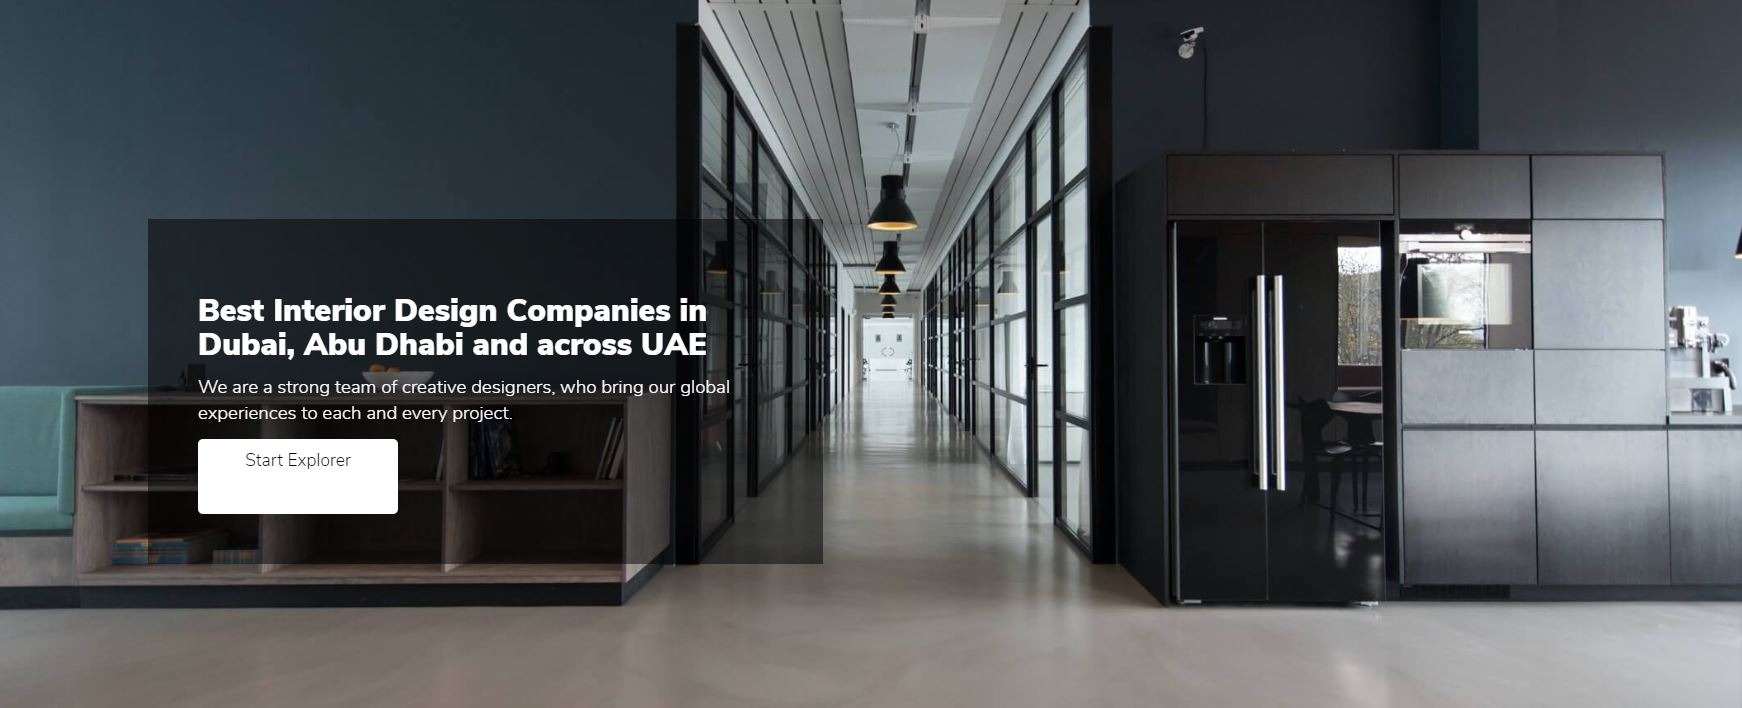 Fire protection company UAE